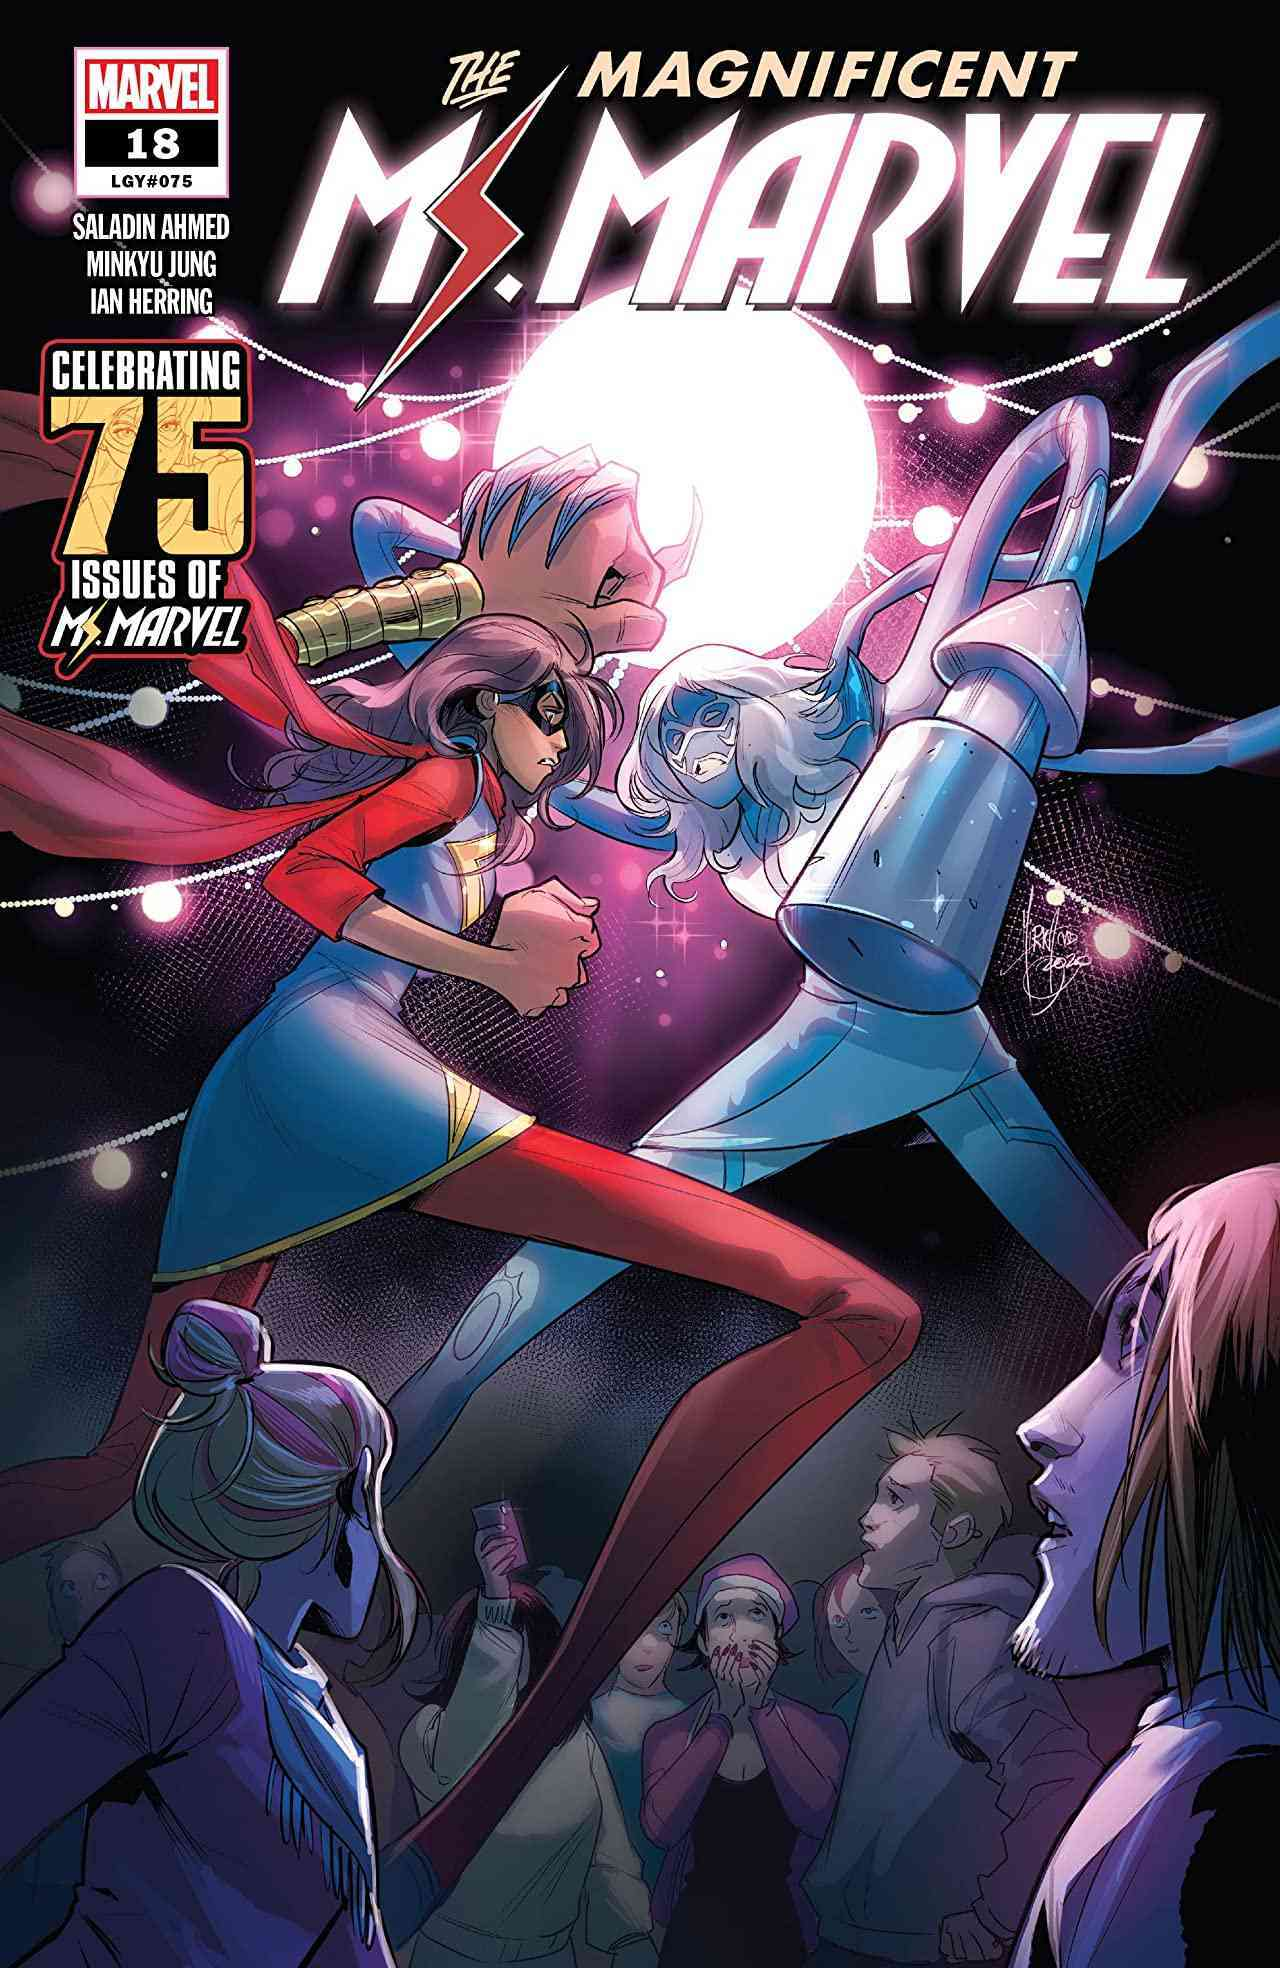 The Magnificent Ms Marvel #18